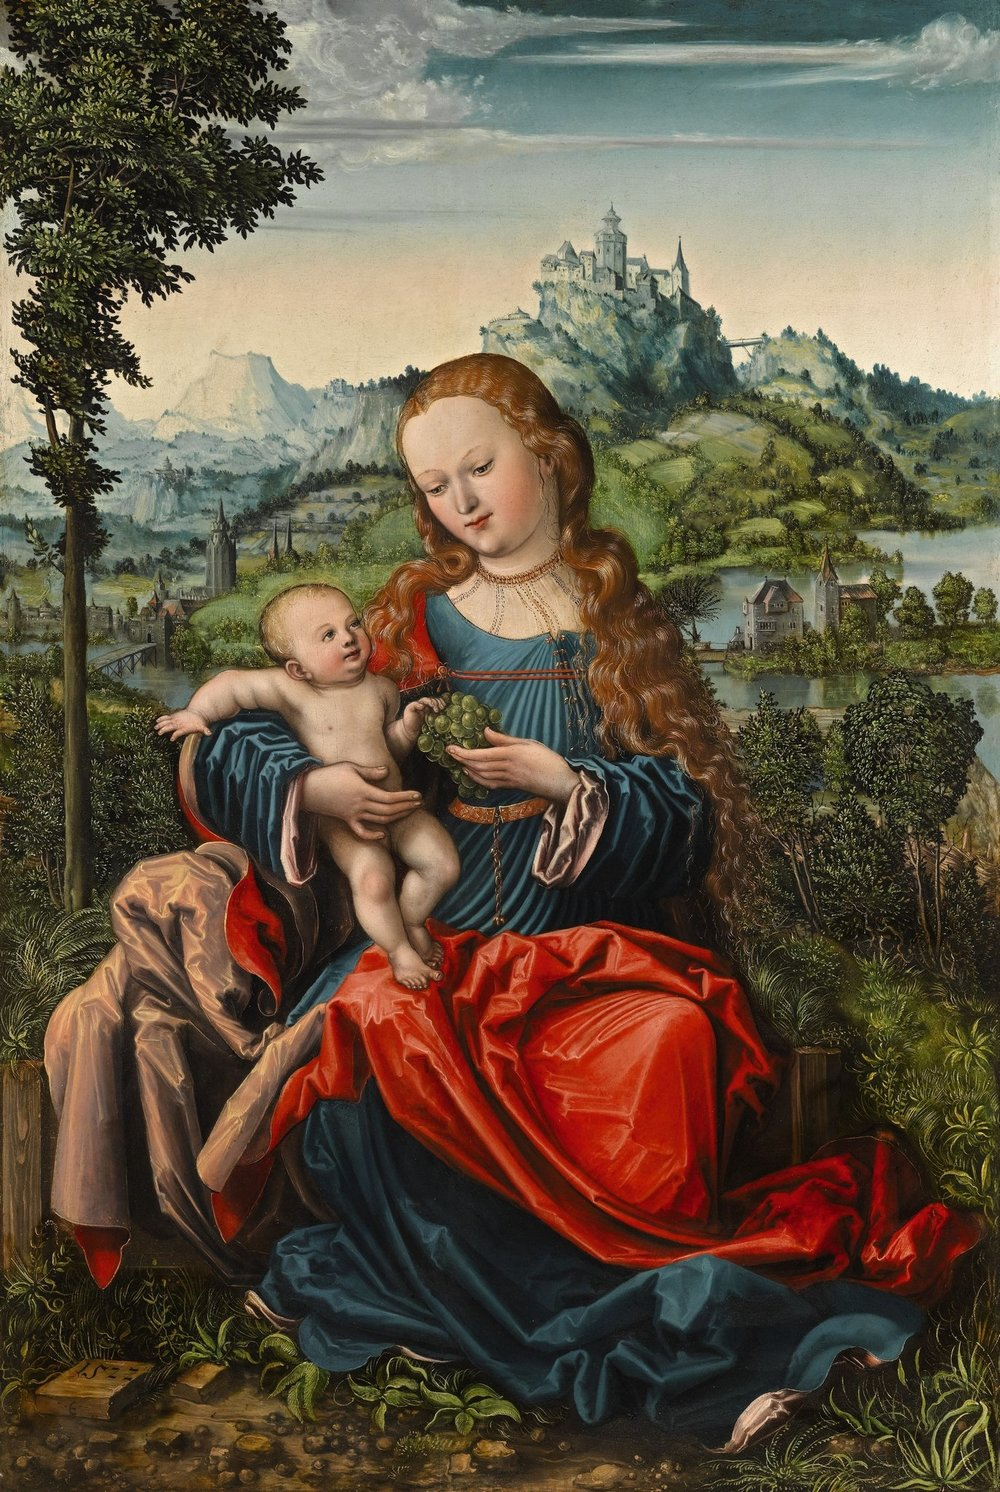 madonna-and-child-on-a-grassy-bank-sold-at-sothebys-london-july-2014.jpg